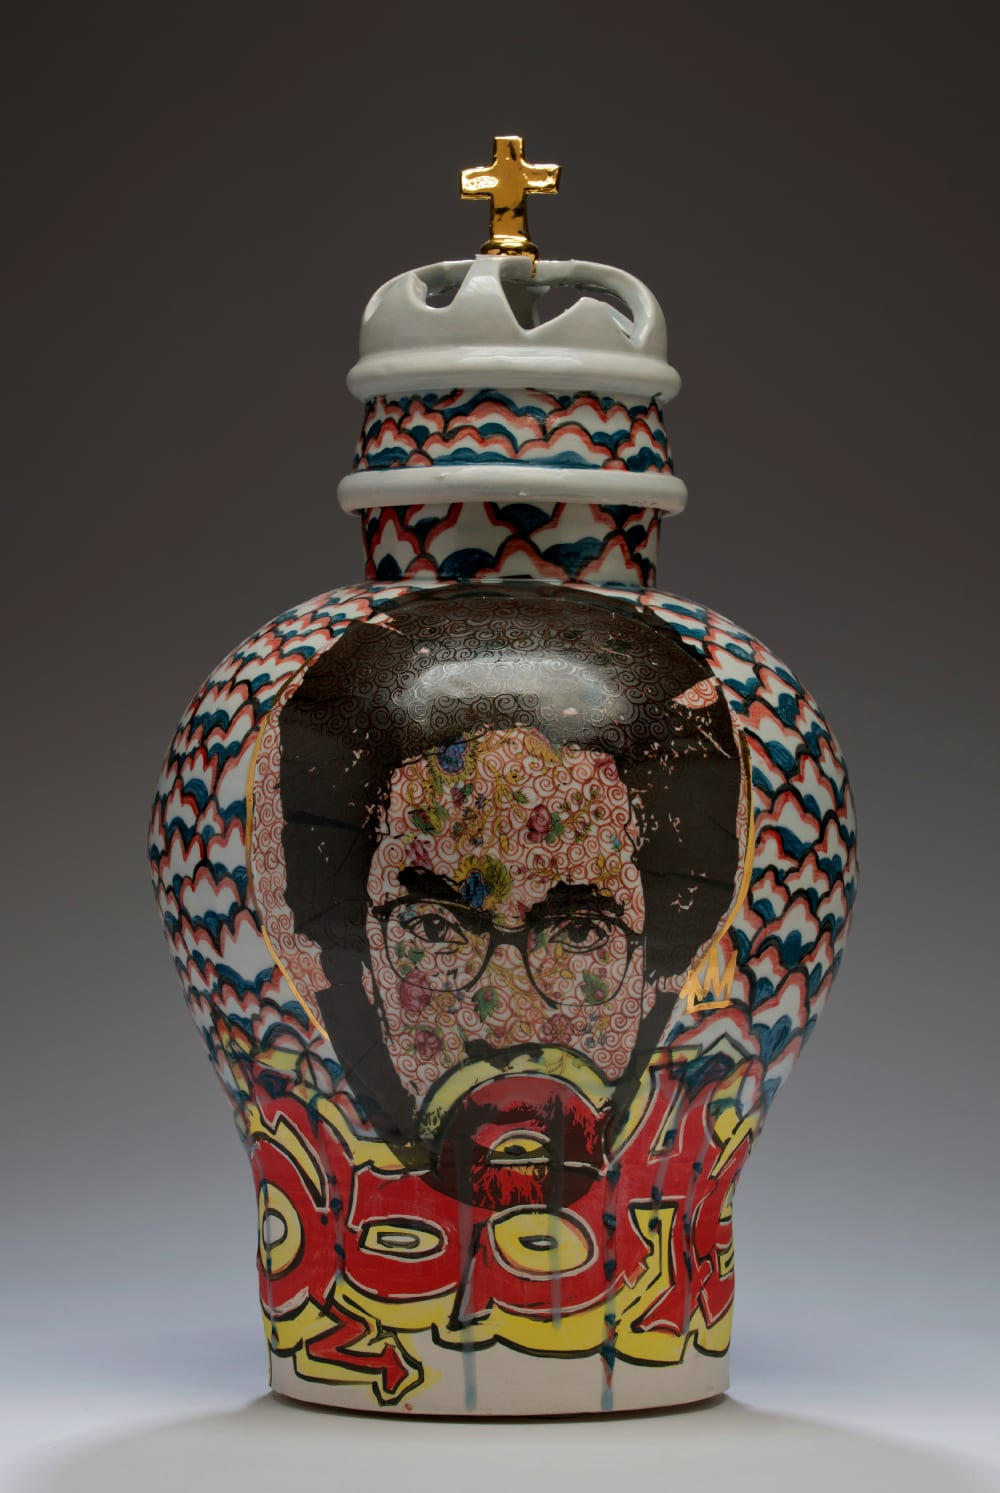 Roberto Lugo, Ol' Dirty Bastard (ODB), 2015, porcelian, glaze, china paint, 11.5 x 11.5 x 21.5 in | Photo by Kenek Photography, courtesy of Wexler Gallery